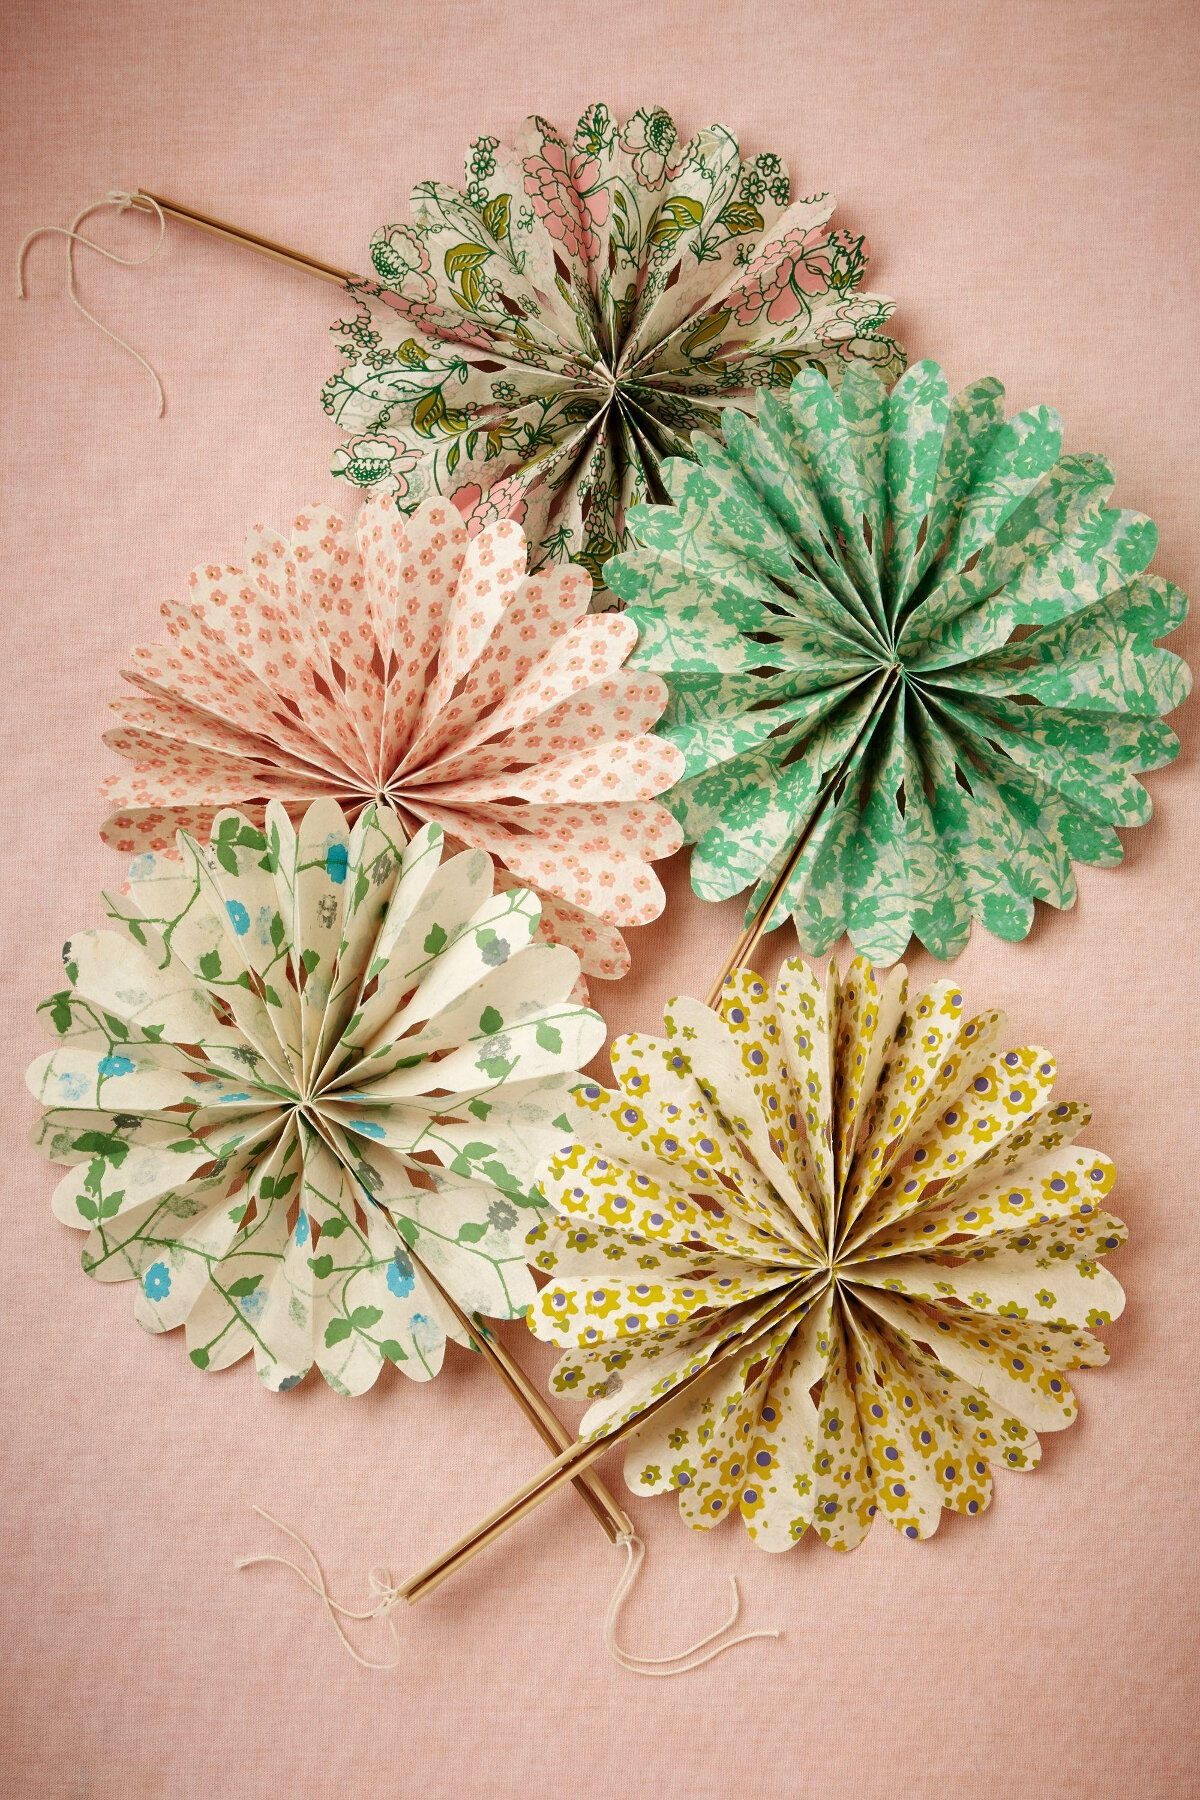 Vintage Looking Fan Cute Vintage Looking Decorations Party Planning Ideas